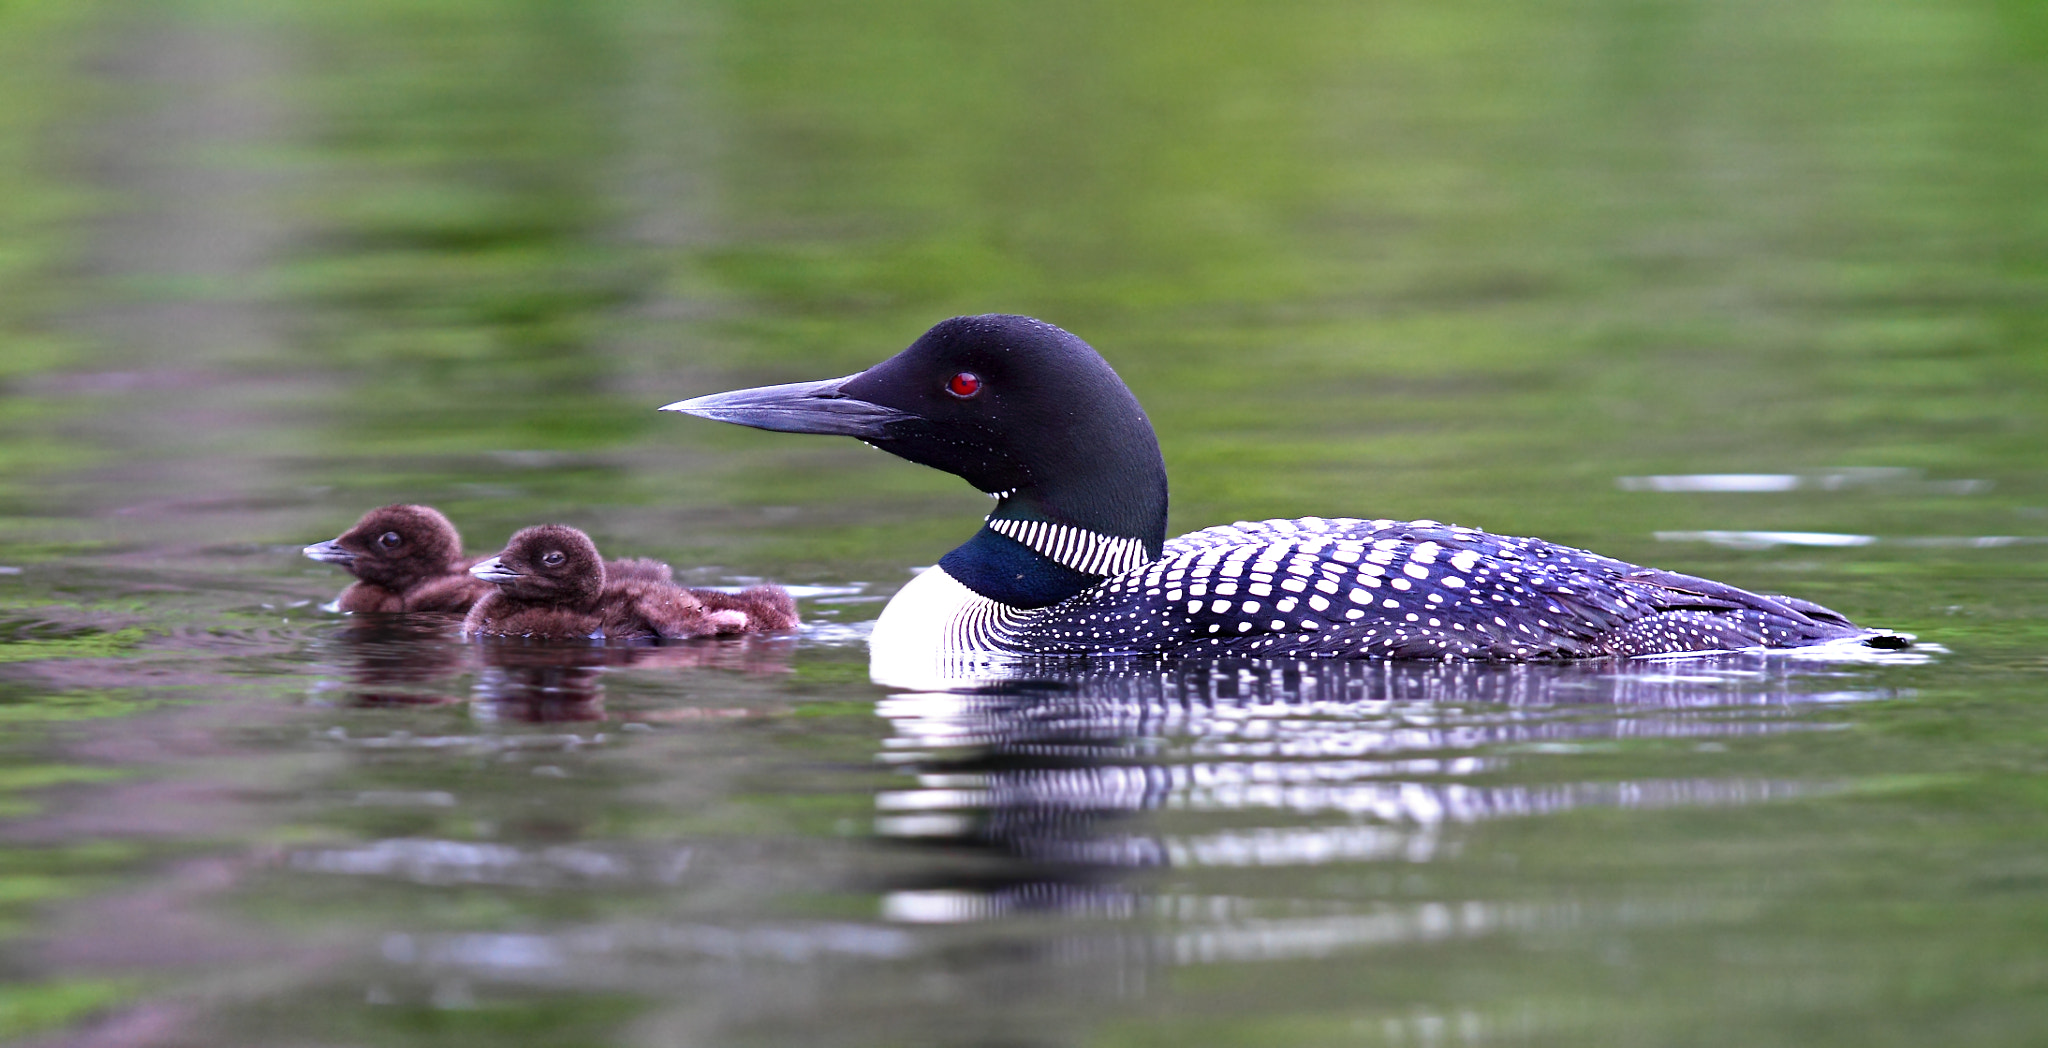 Photograph The Calm before the Storm - Common Loon by Jim Cumming on 500px